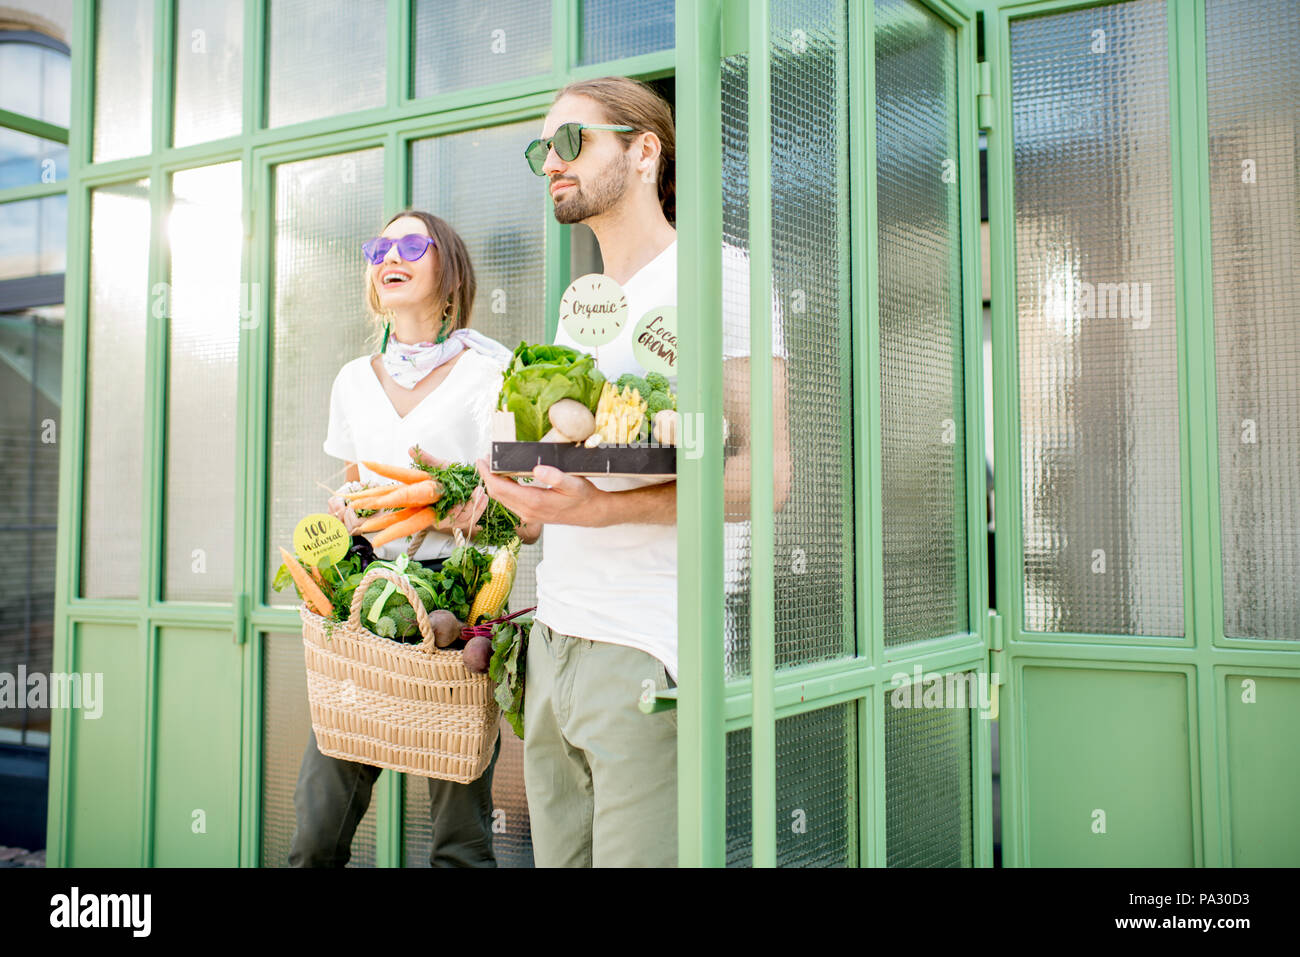 Young vegetarian couple going out the market holding bag and box full of just bought fresh products - Stock Image